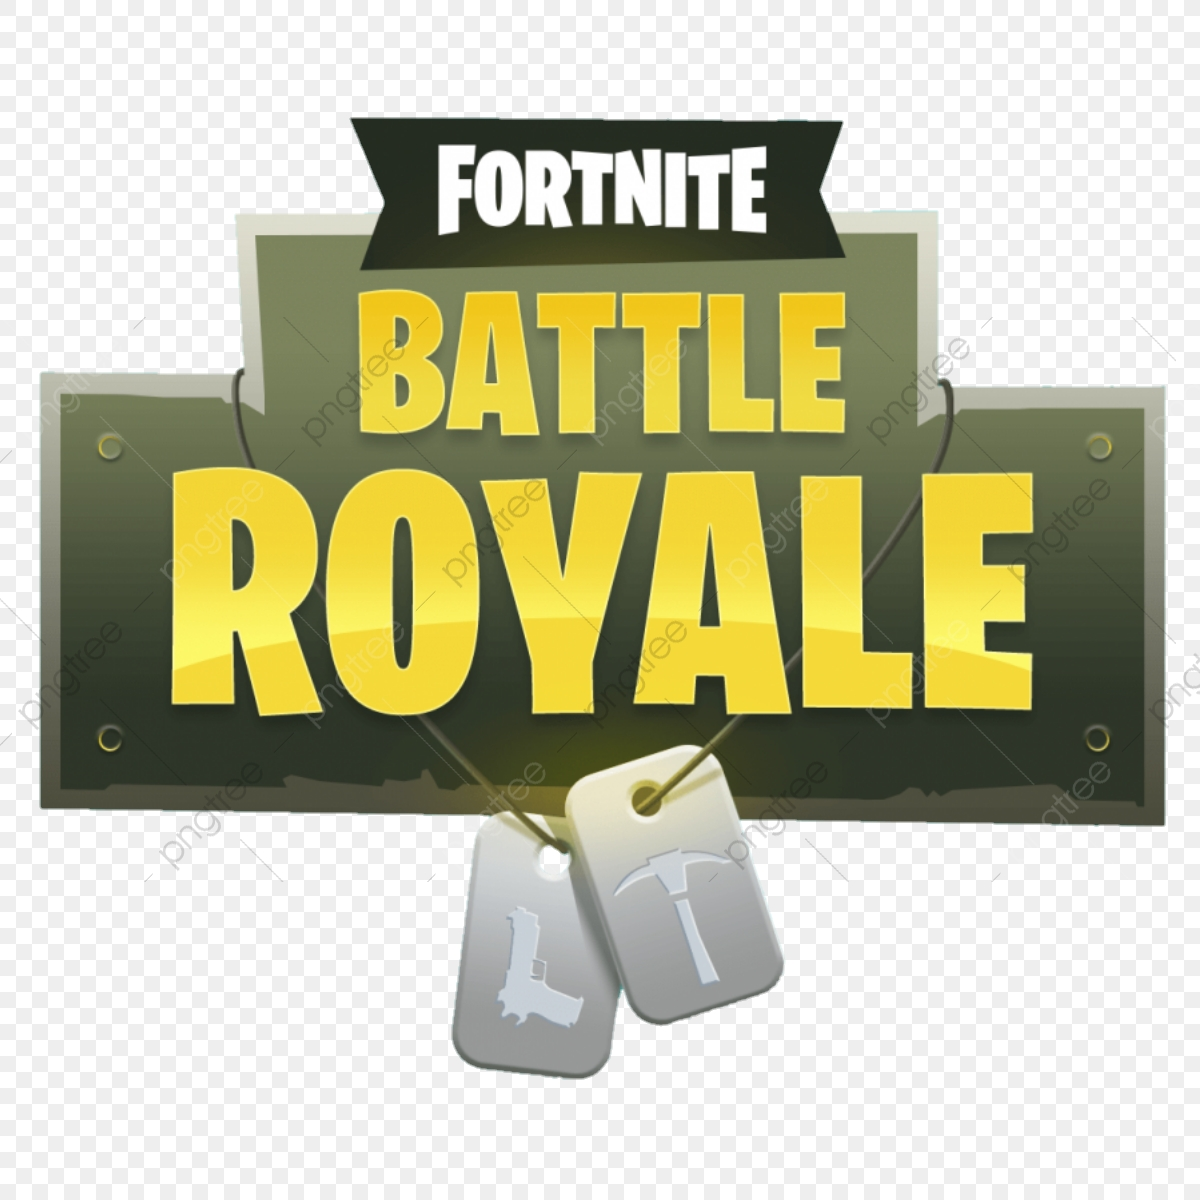 Fortnite, Battle Royal, Fortnite Battle Royal PNG and Vector with.